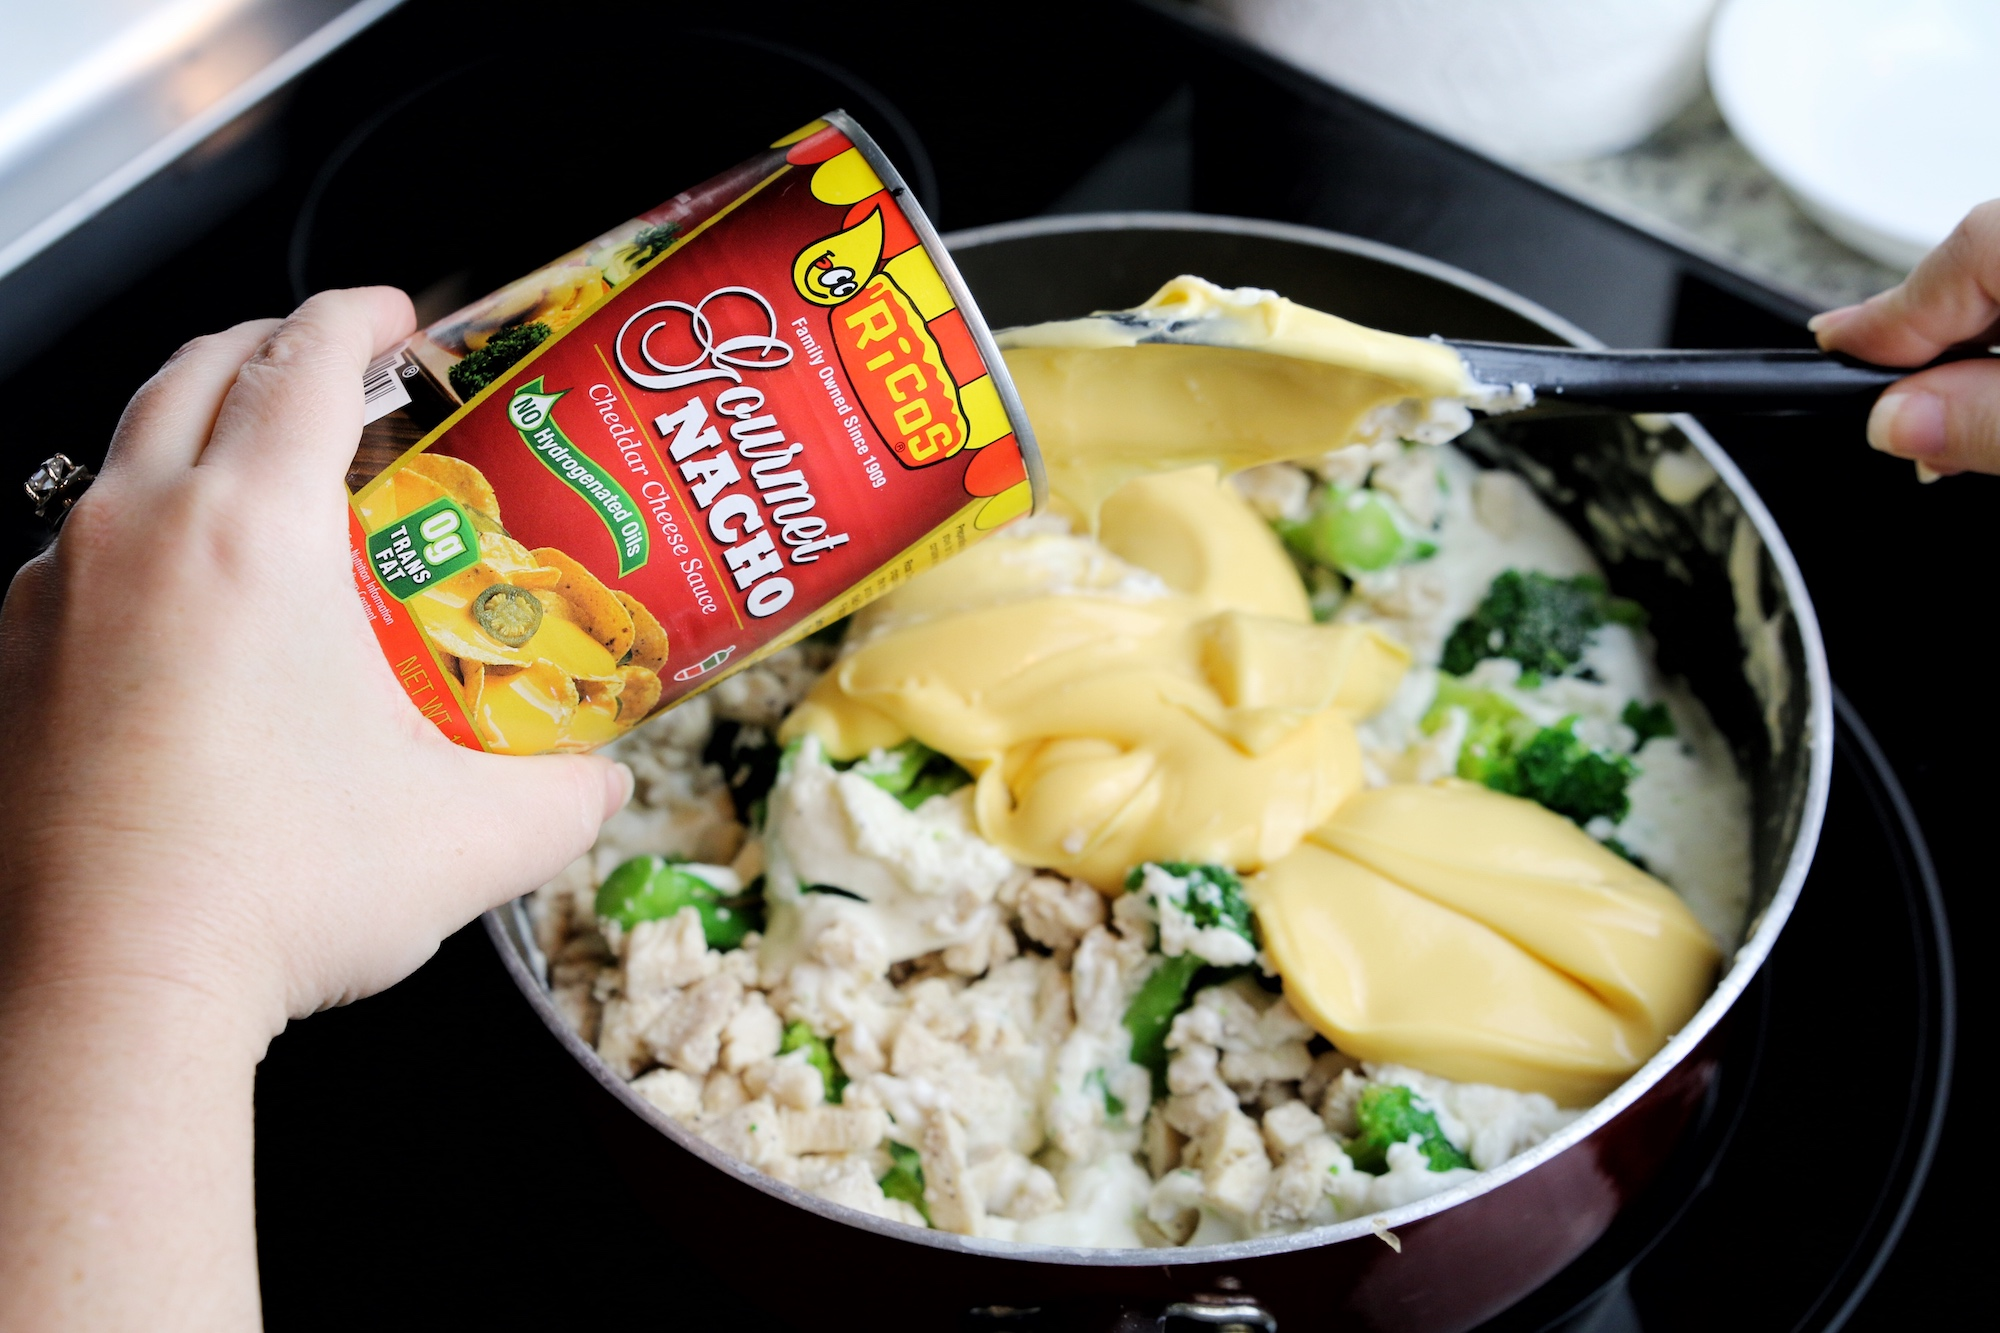 add Ricos Cheese to your chicken broccoli mix